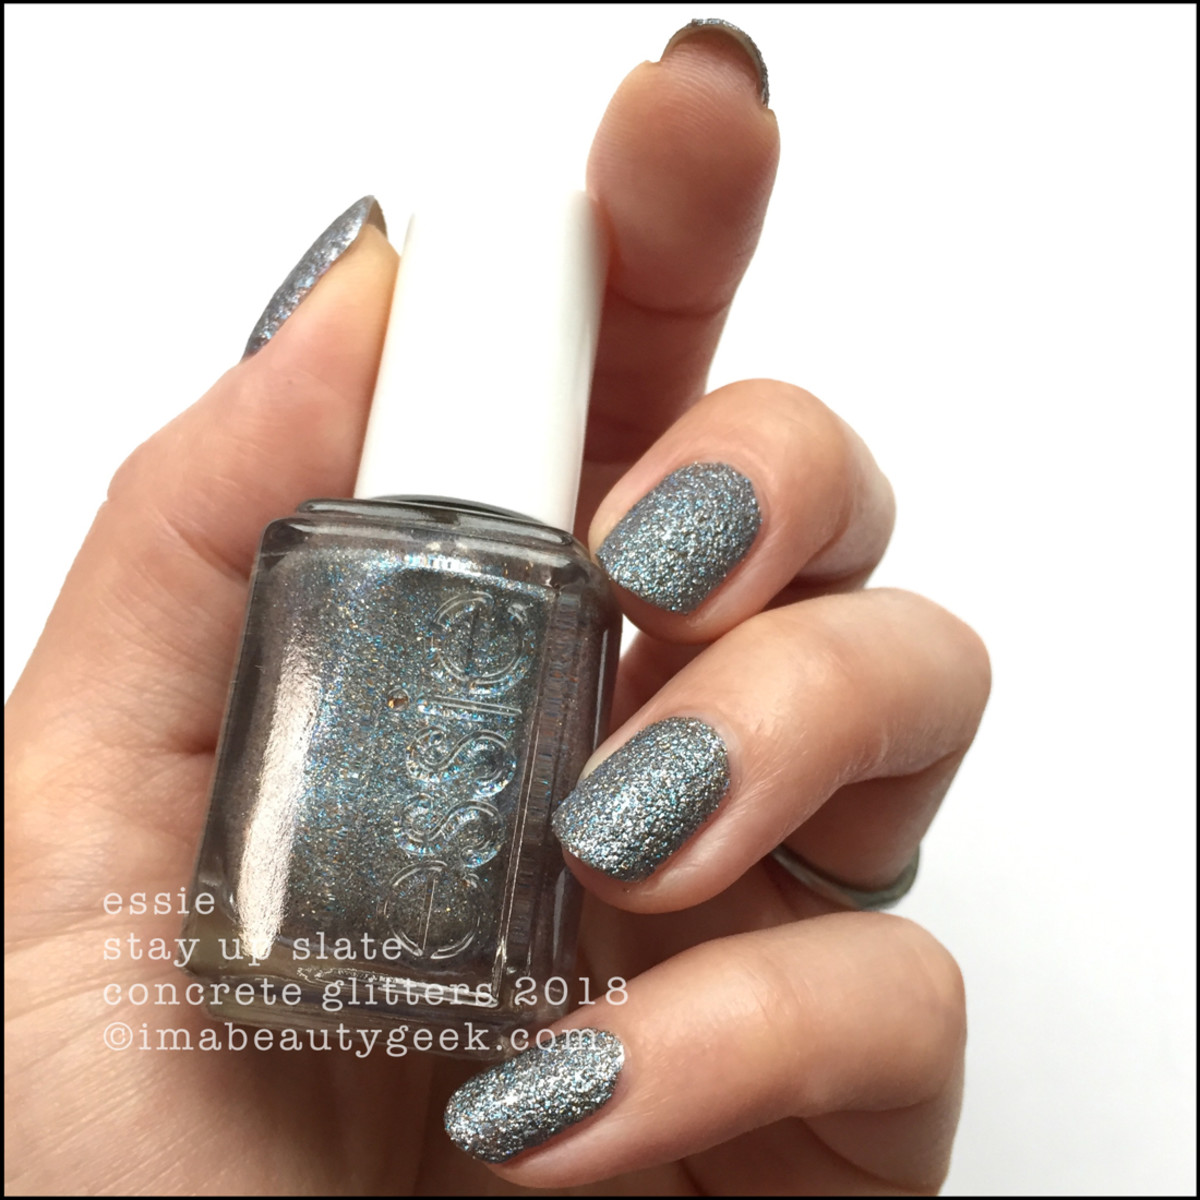 Essie Stay Up Slate - Essie Concrete Glitters 2018 Swatches